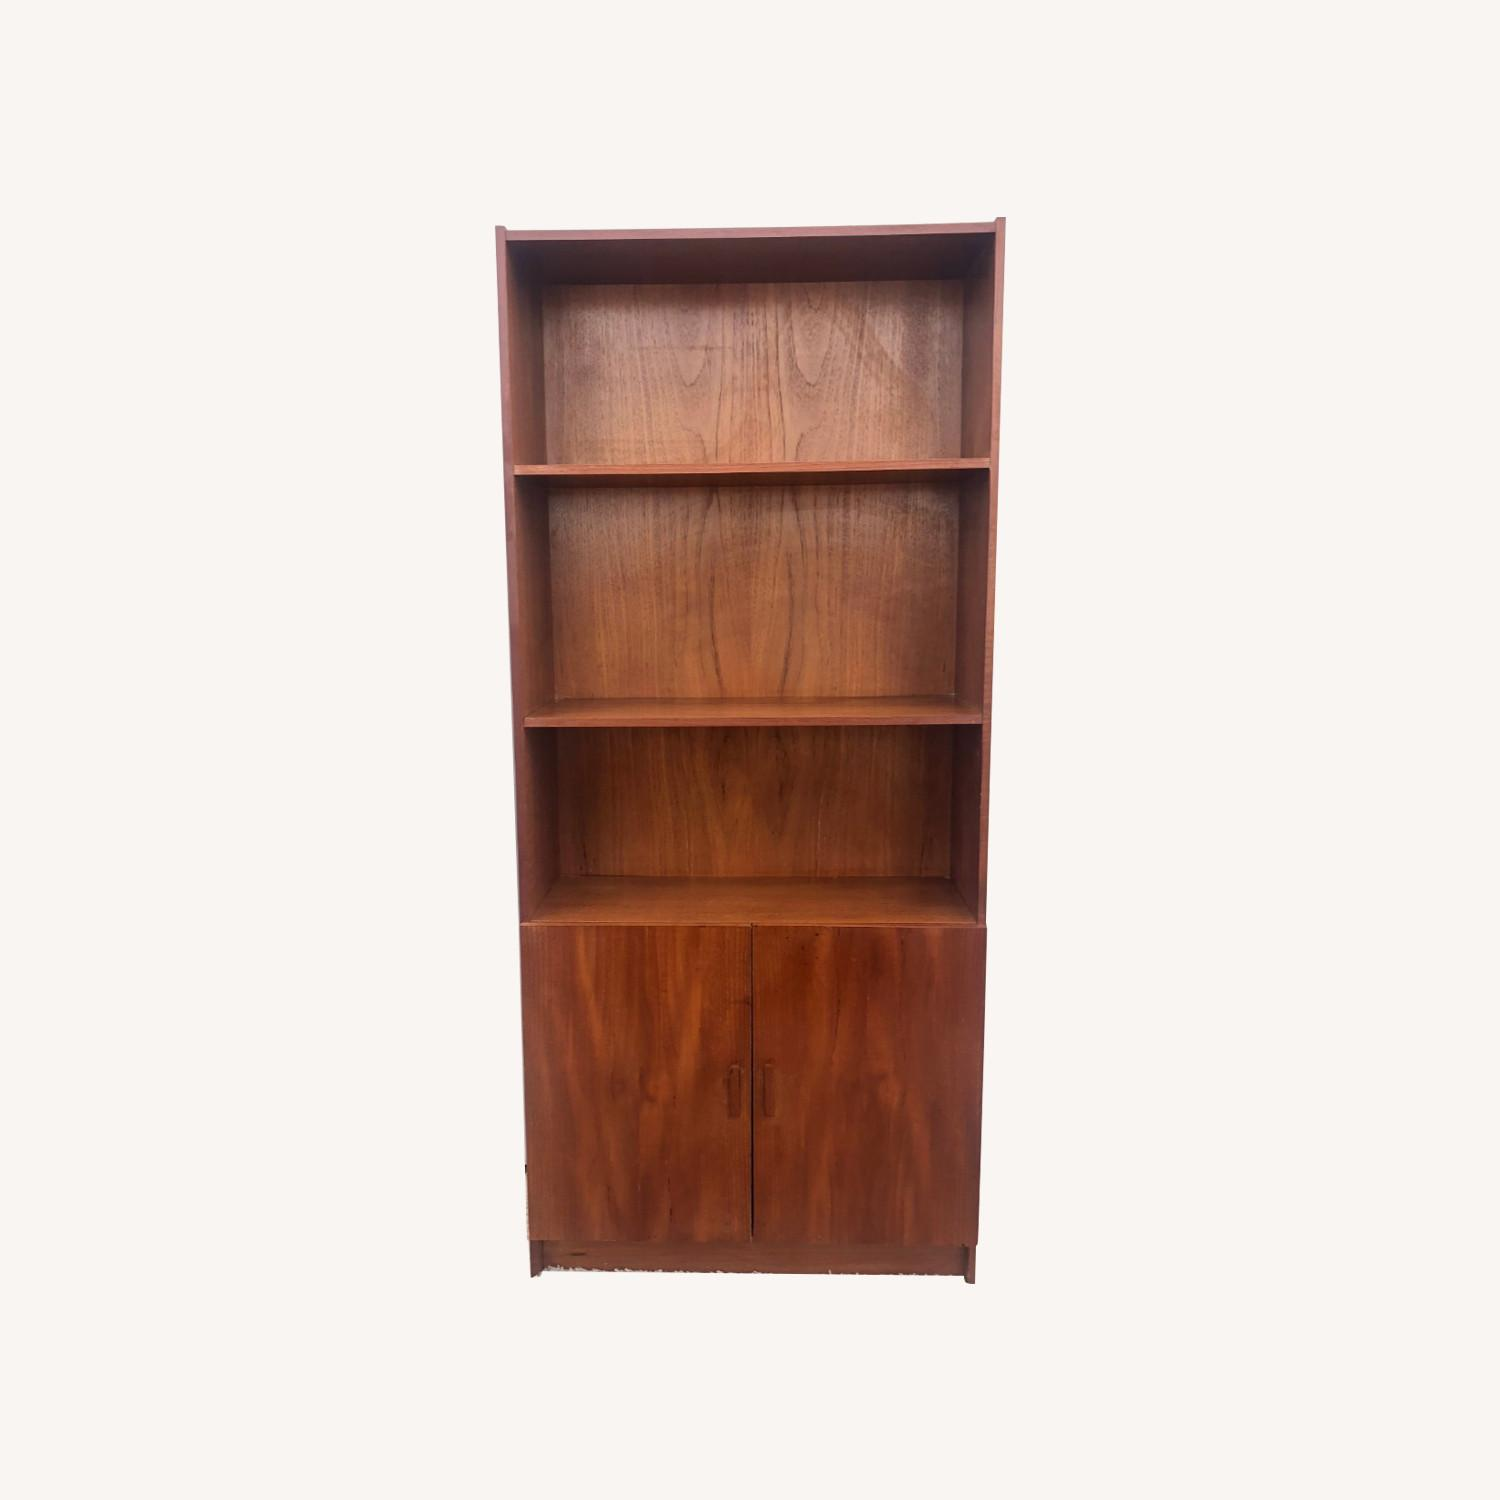 Danish Modern Teak Shelving with Cabinet - image-0